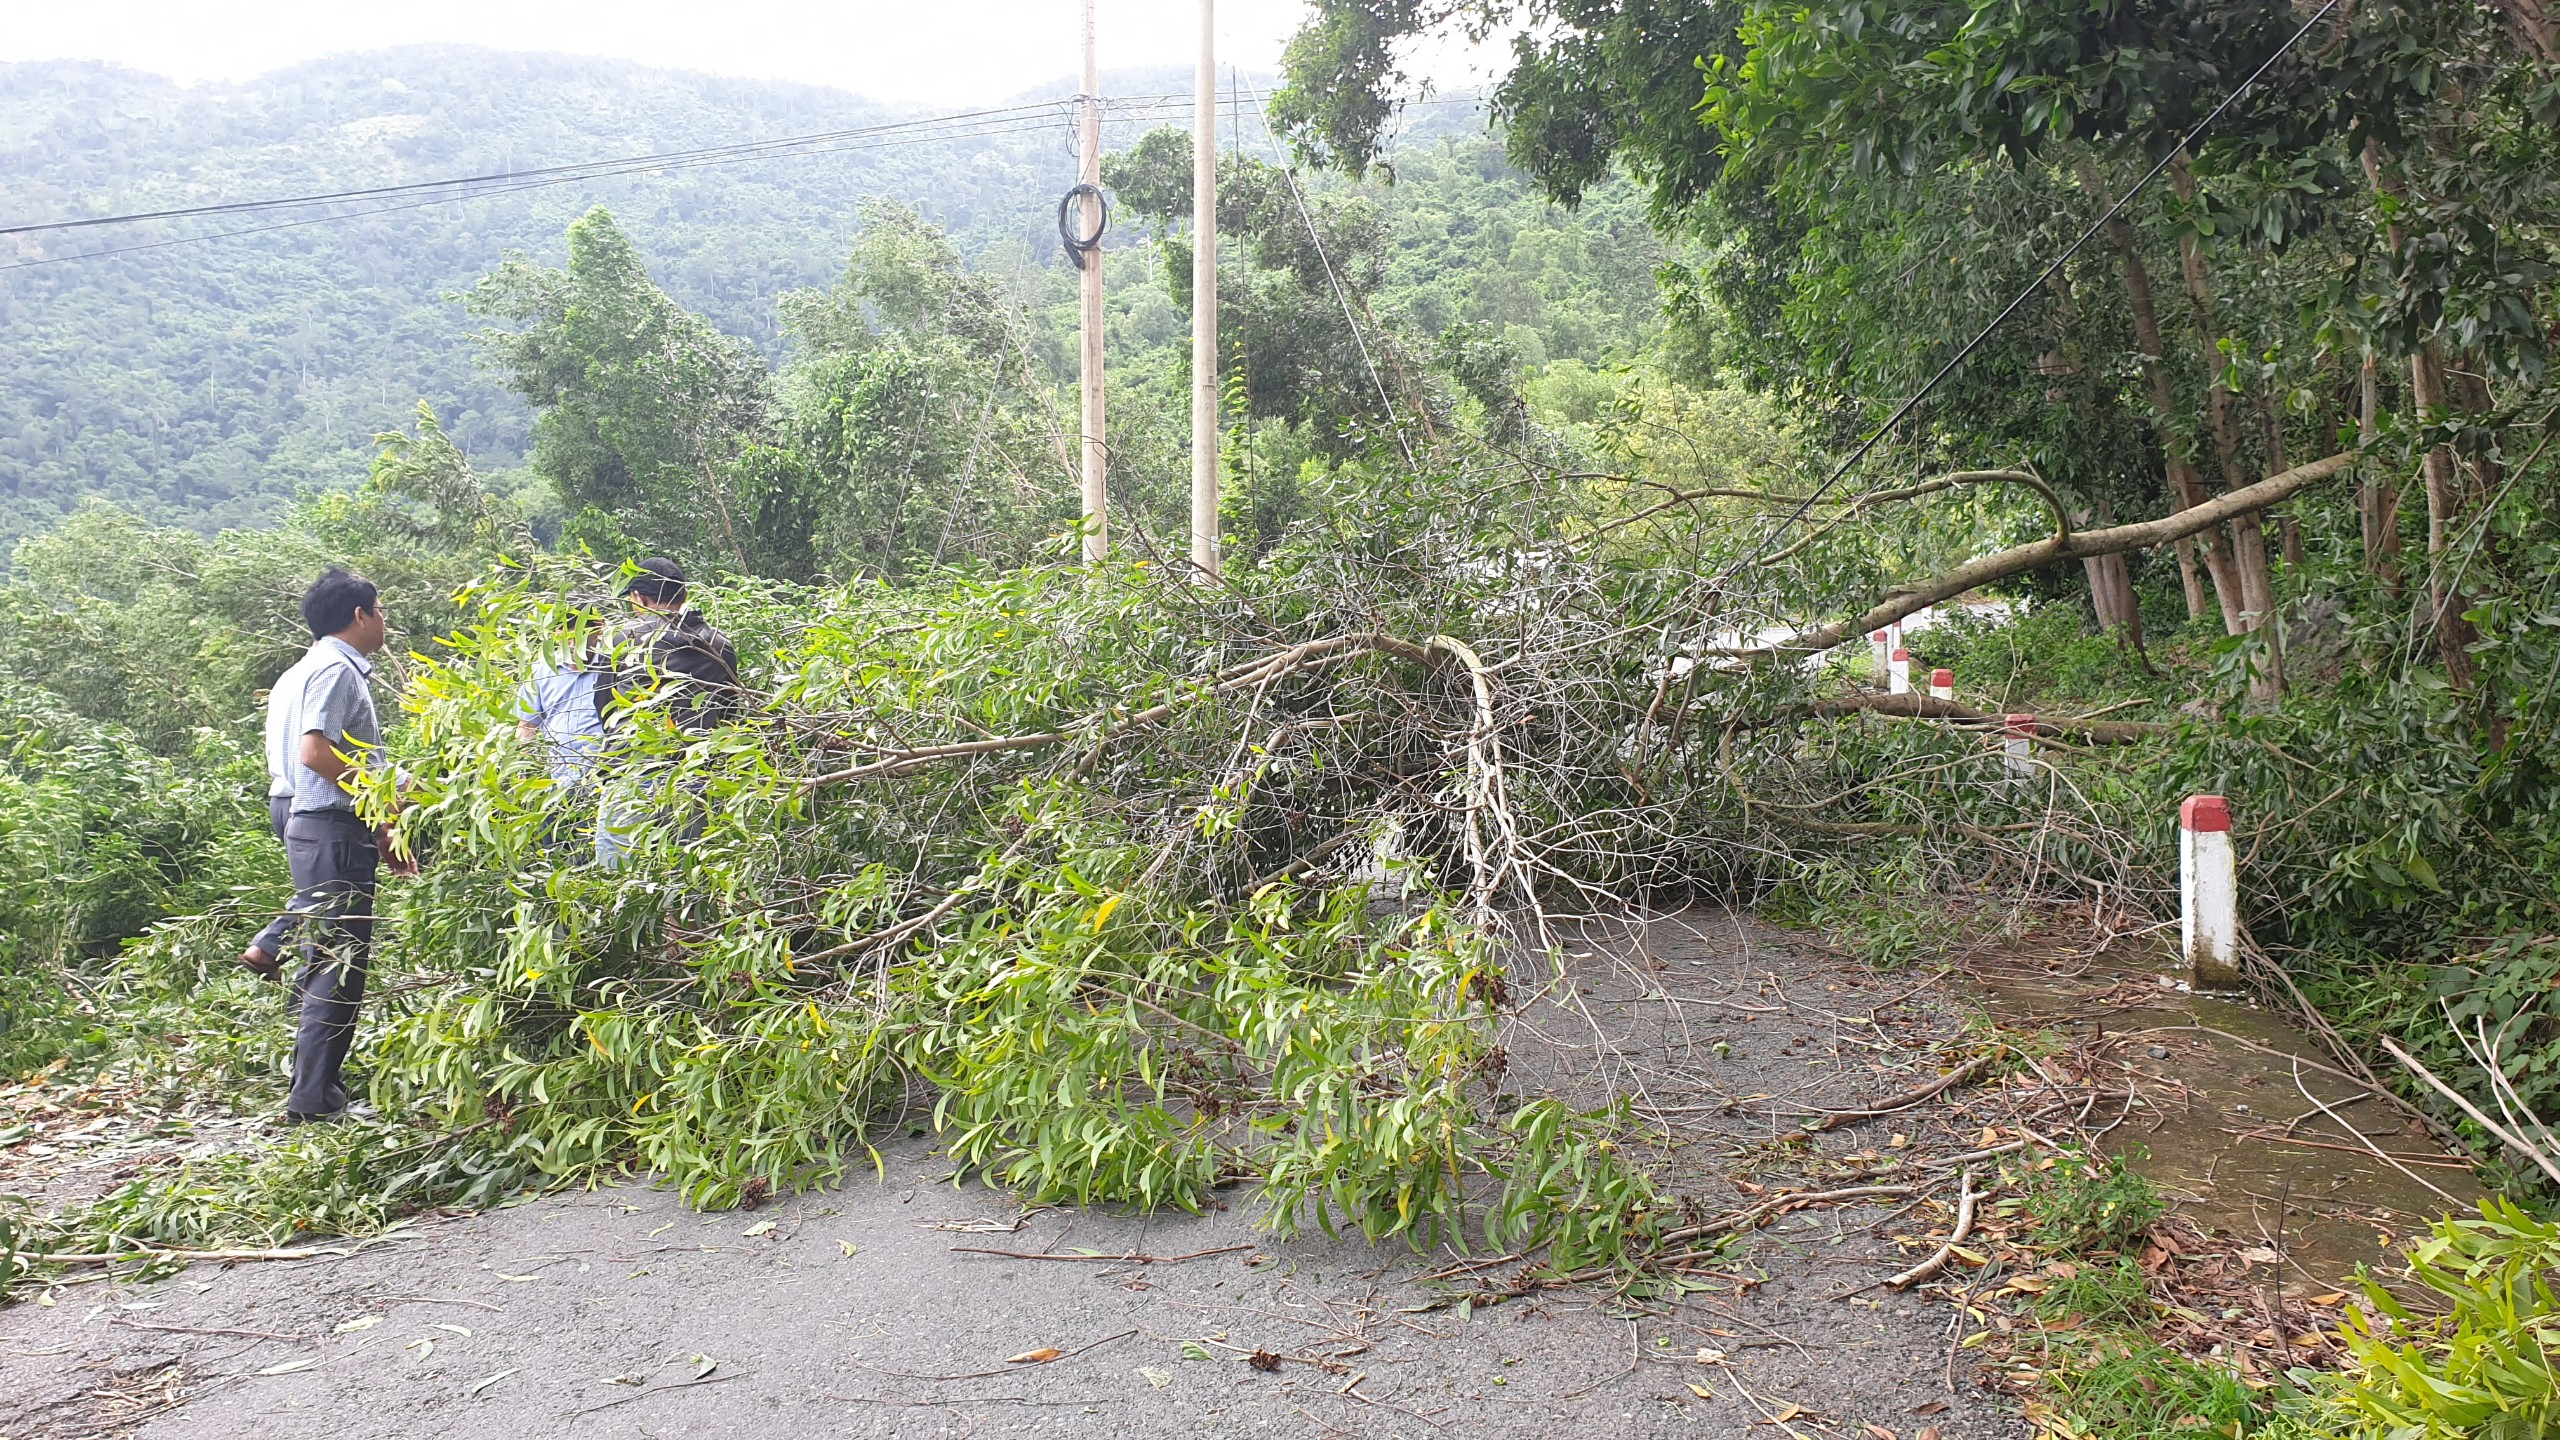 Many fallen trees cause traffic disruption on Provincial Road 9